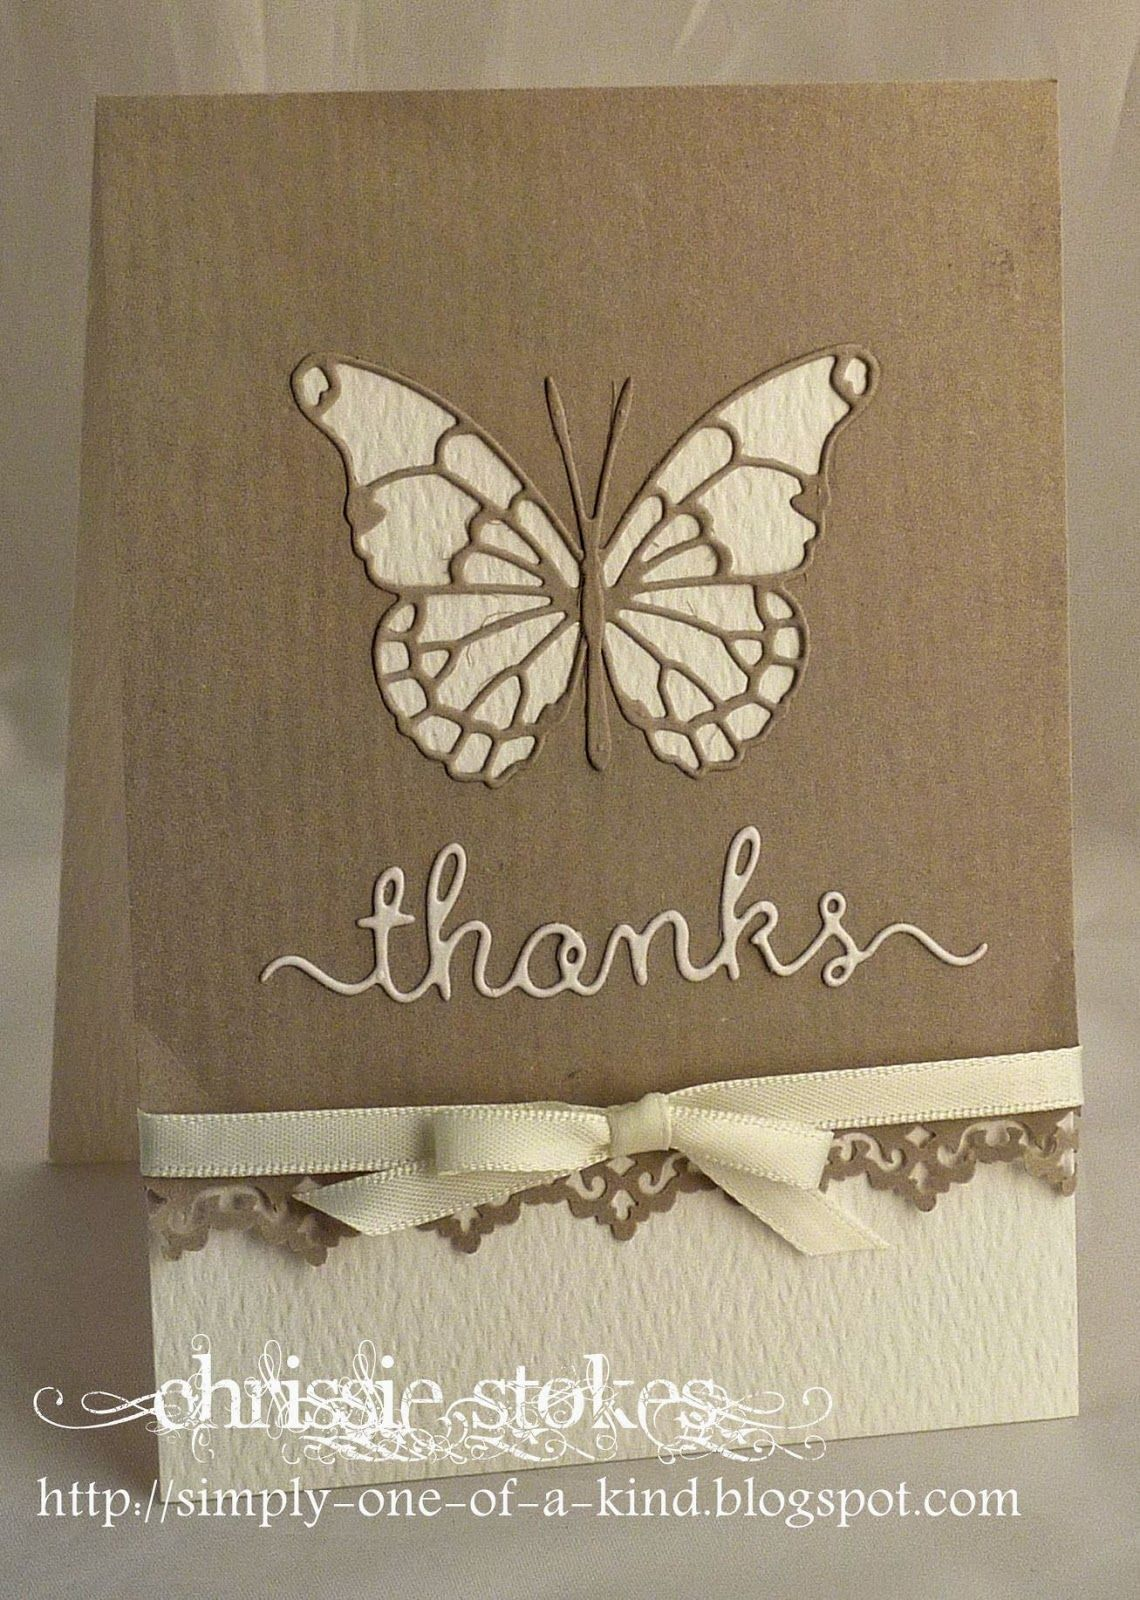 Handmade thank you card from simply one of a kind silhouette